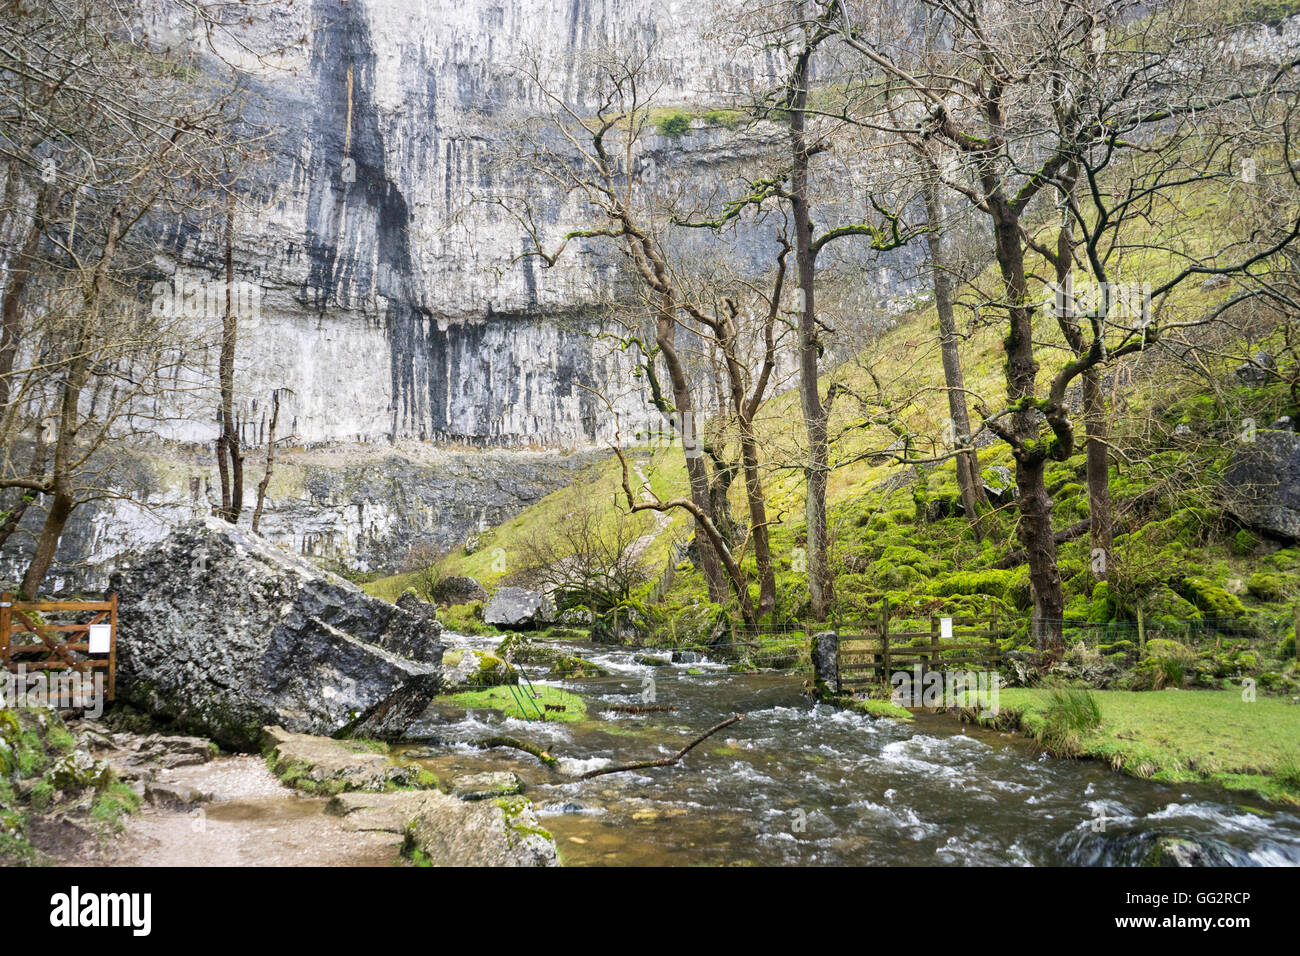 Deeply eroded limestone pavement at Malham Cove, Yorkshire Dales UK - Stock Image